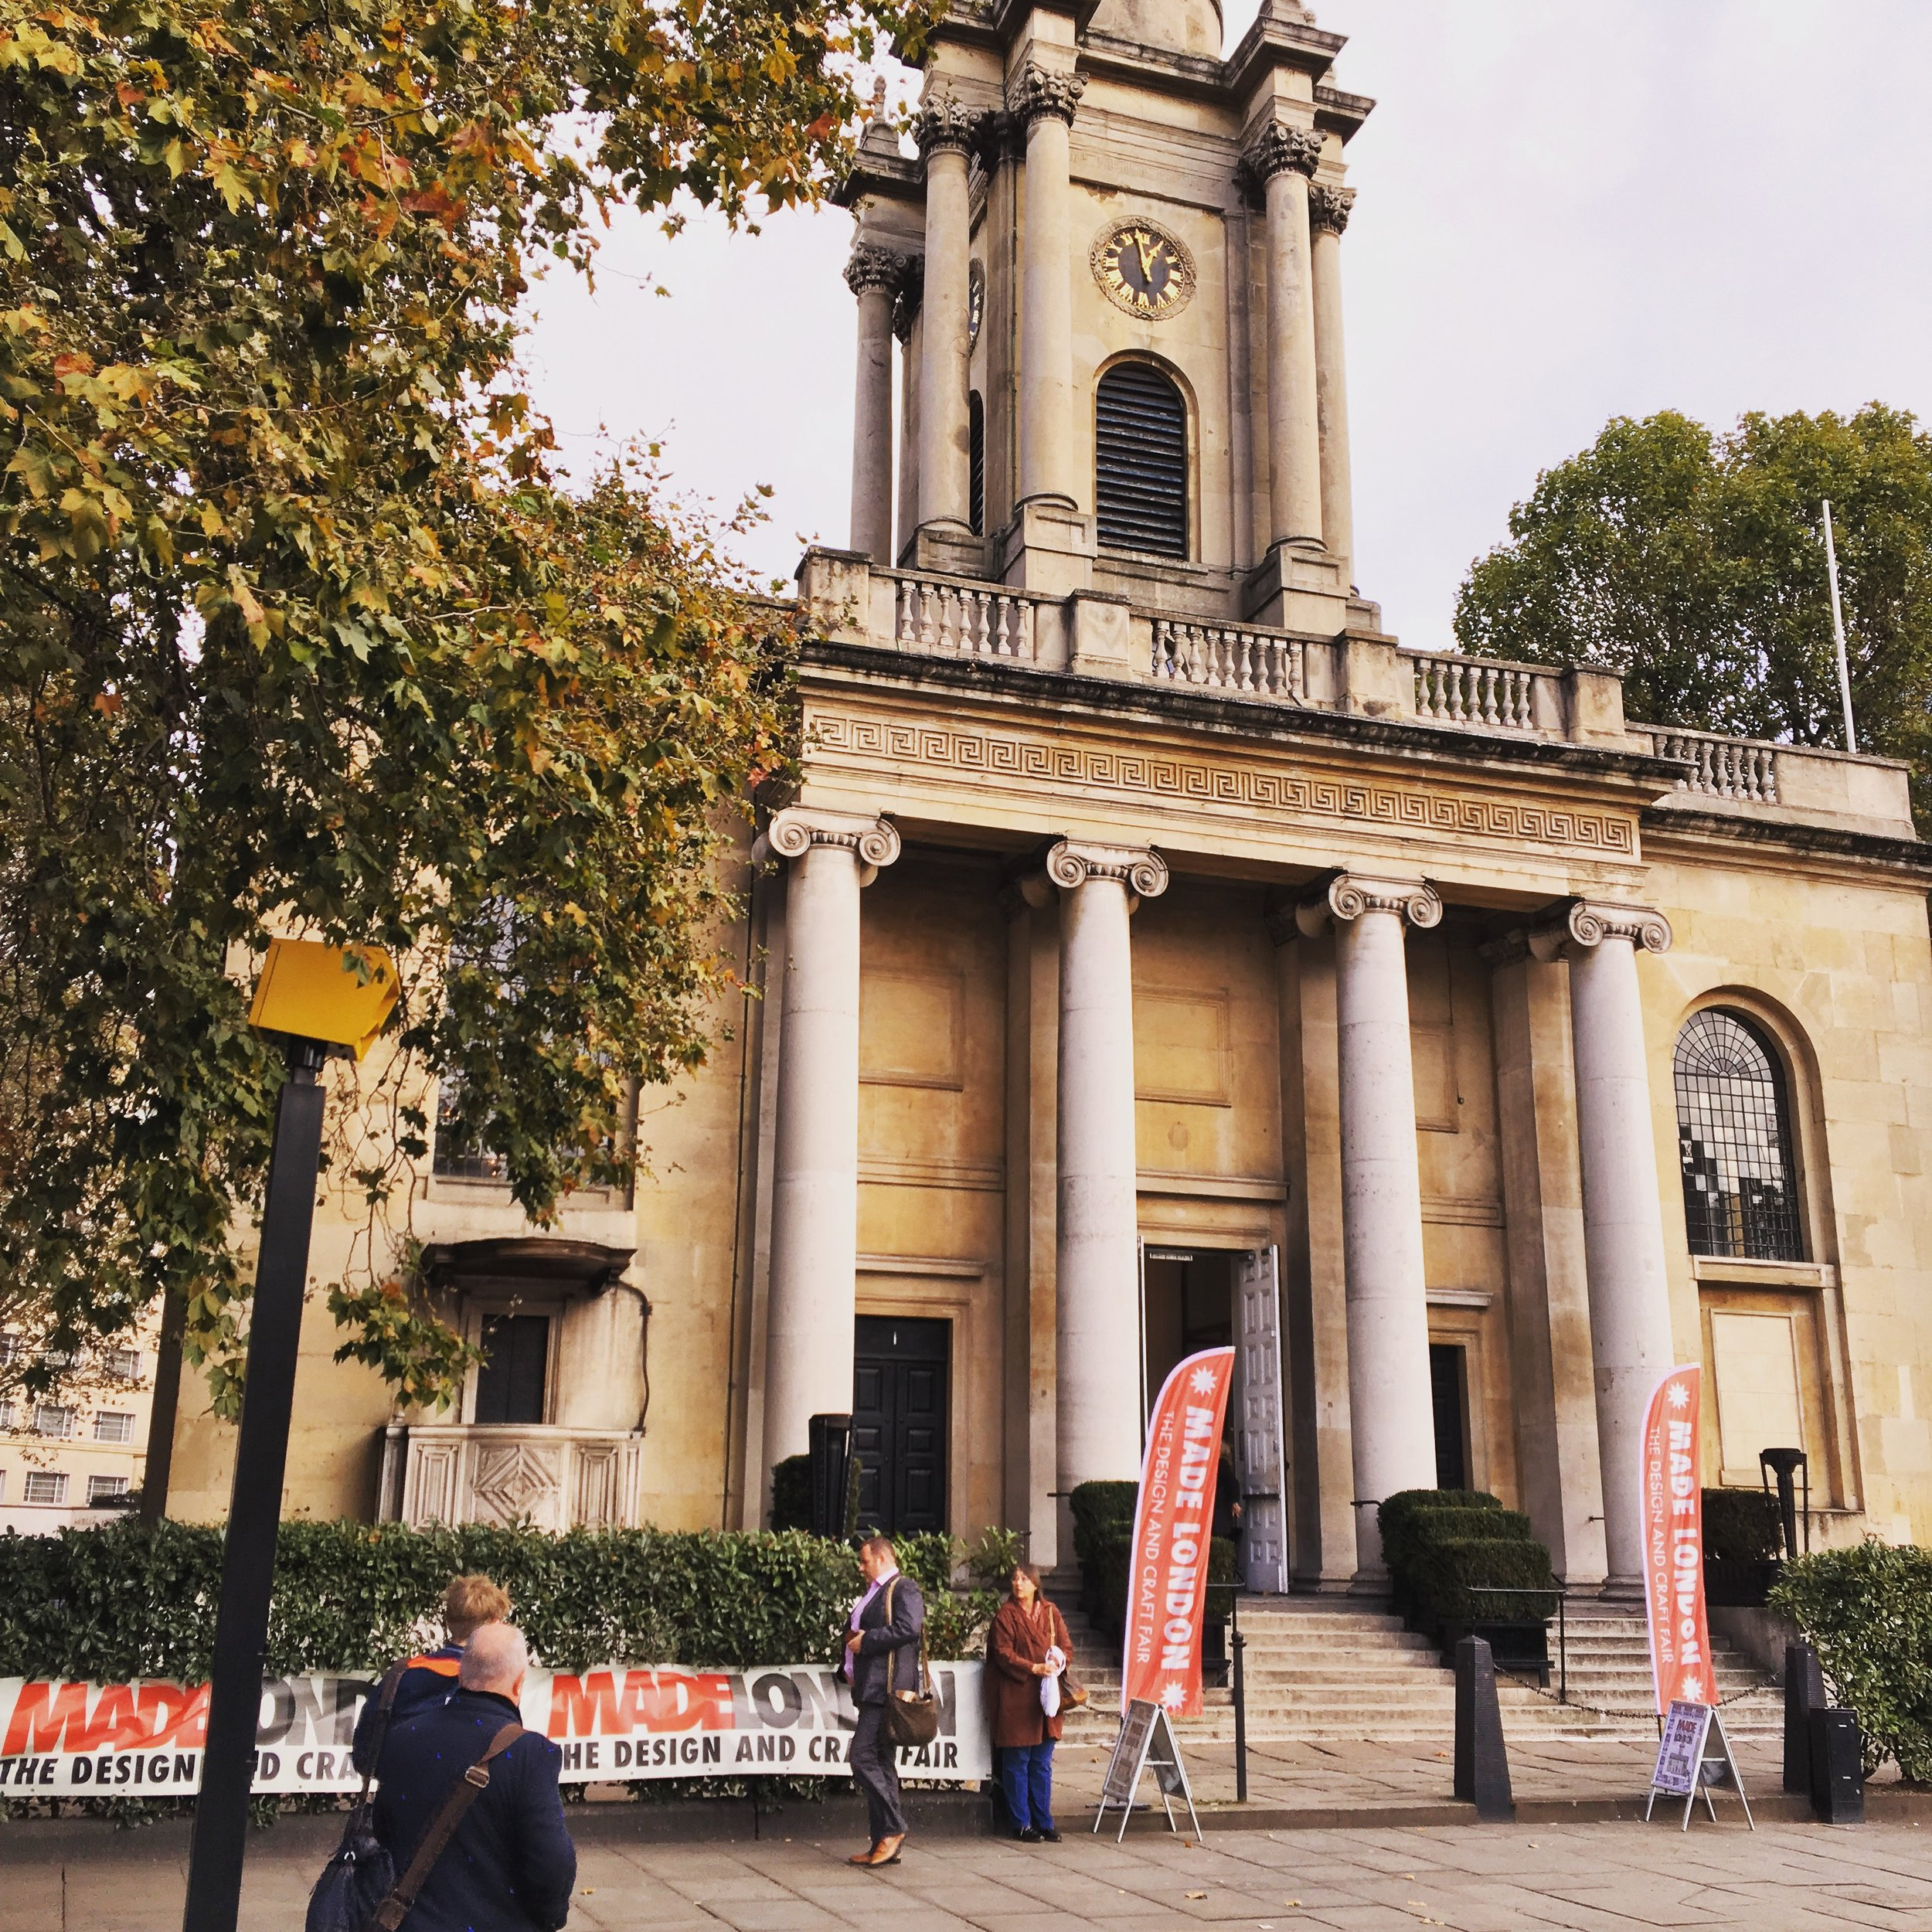 The fantastic Sir John Soane designed venue, conveniently located opposite Great Portland Street tube station